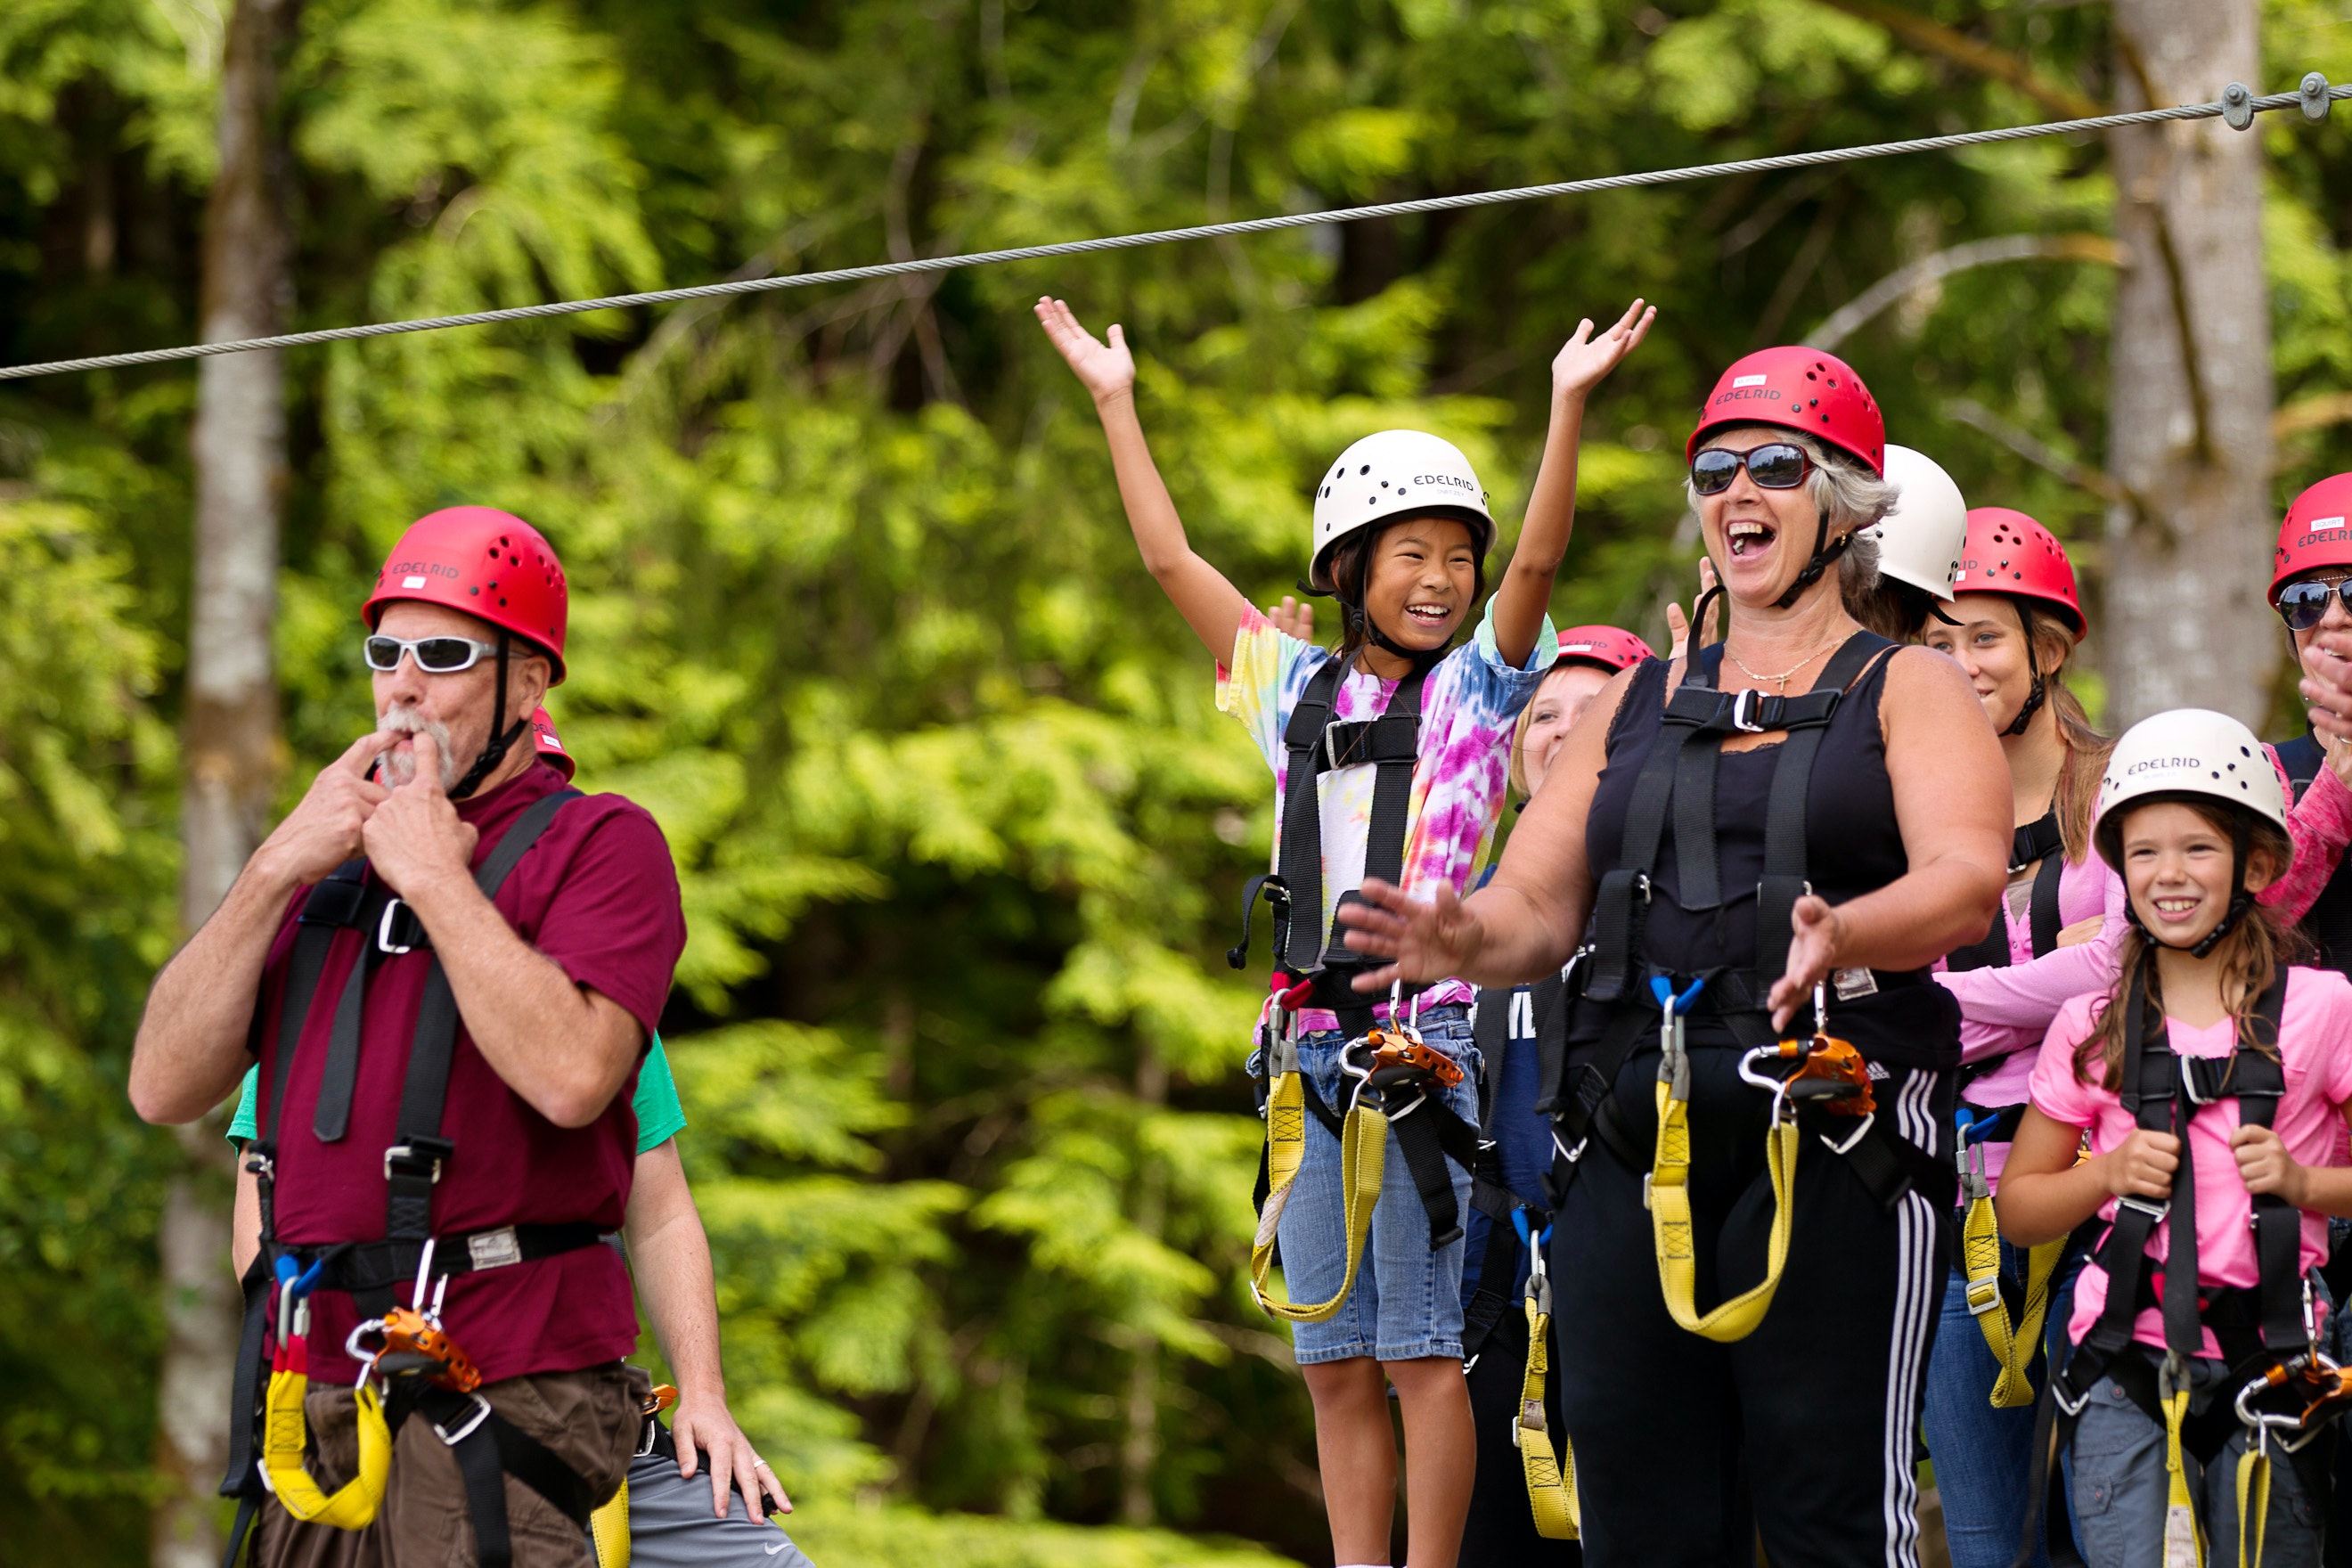 A group cheering on the zip lining course